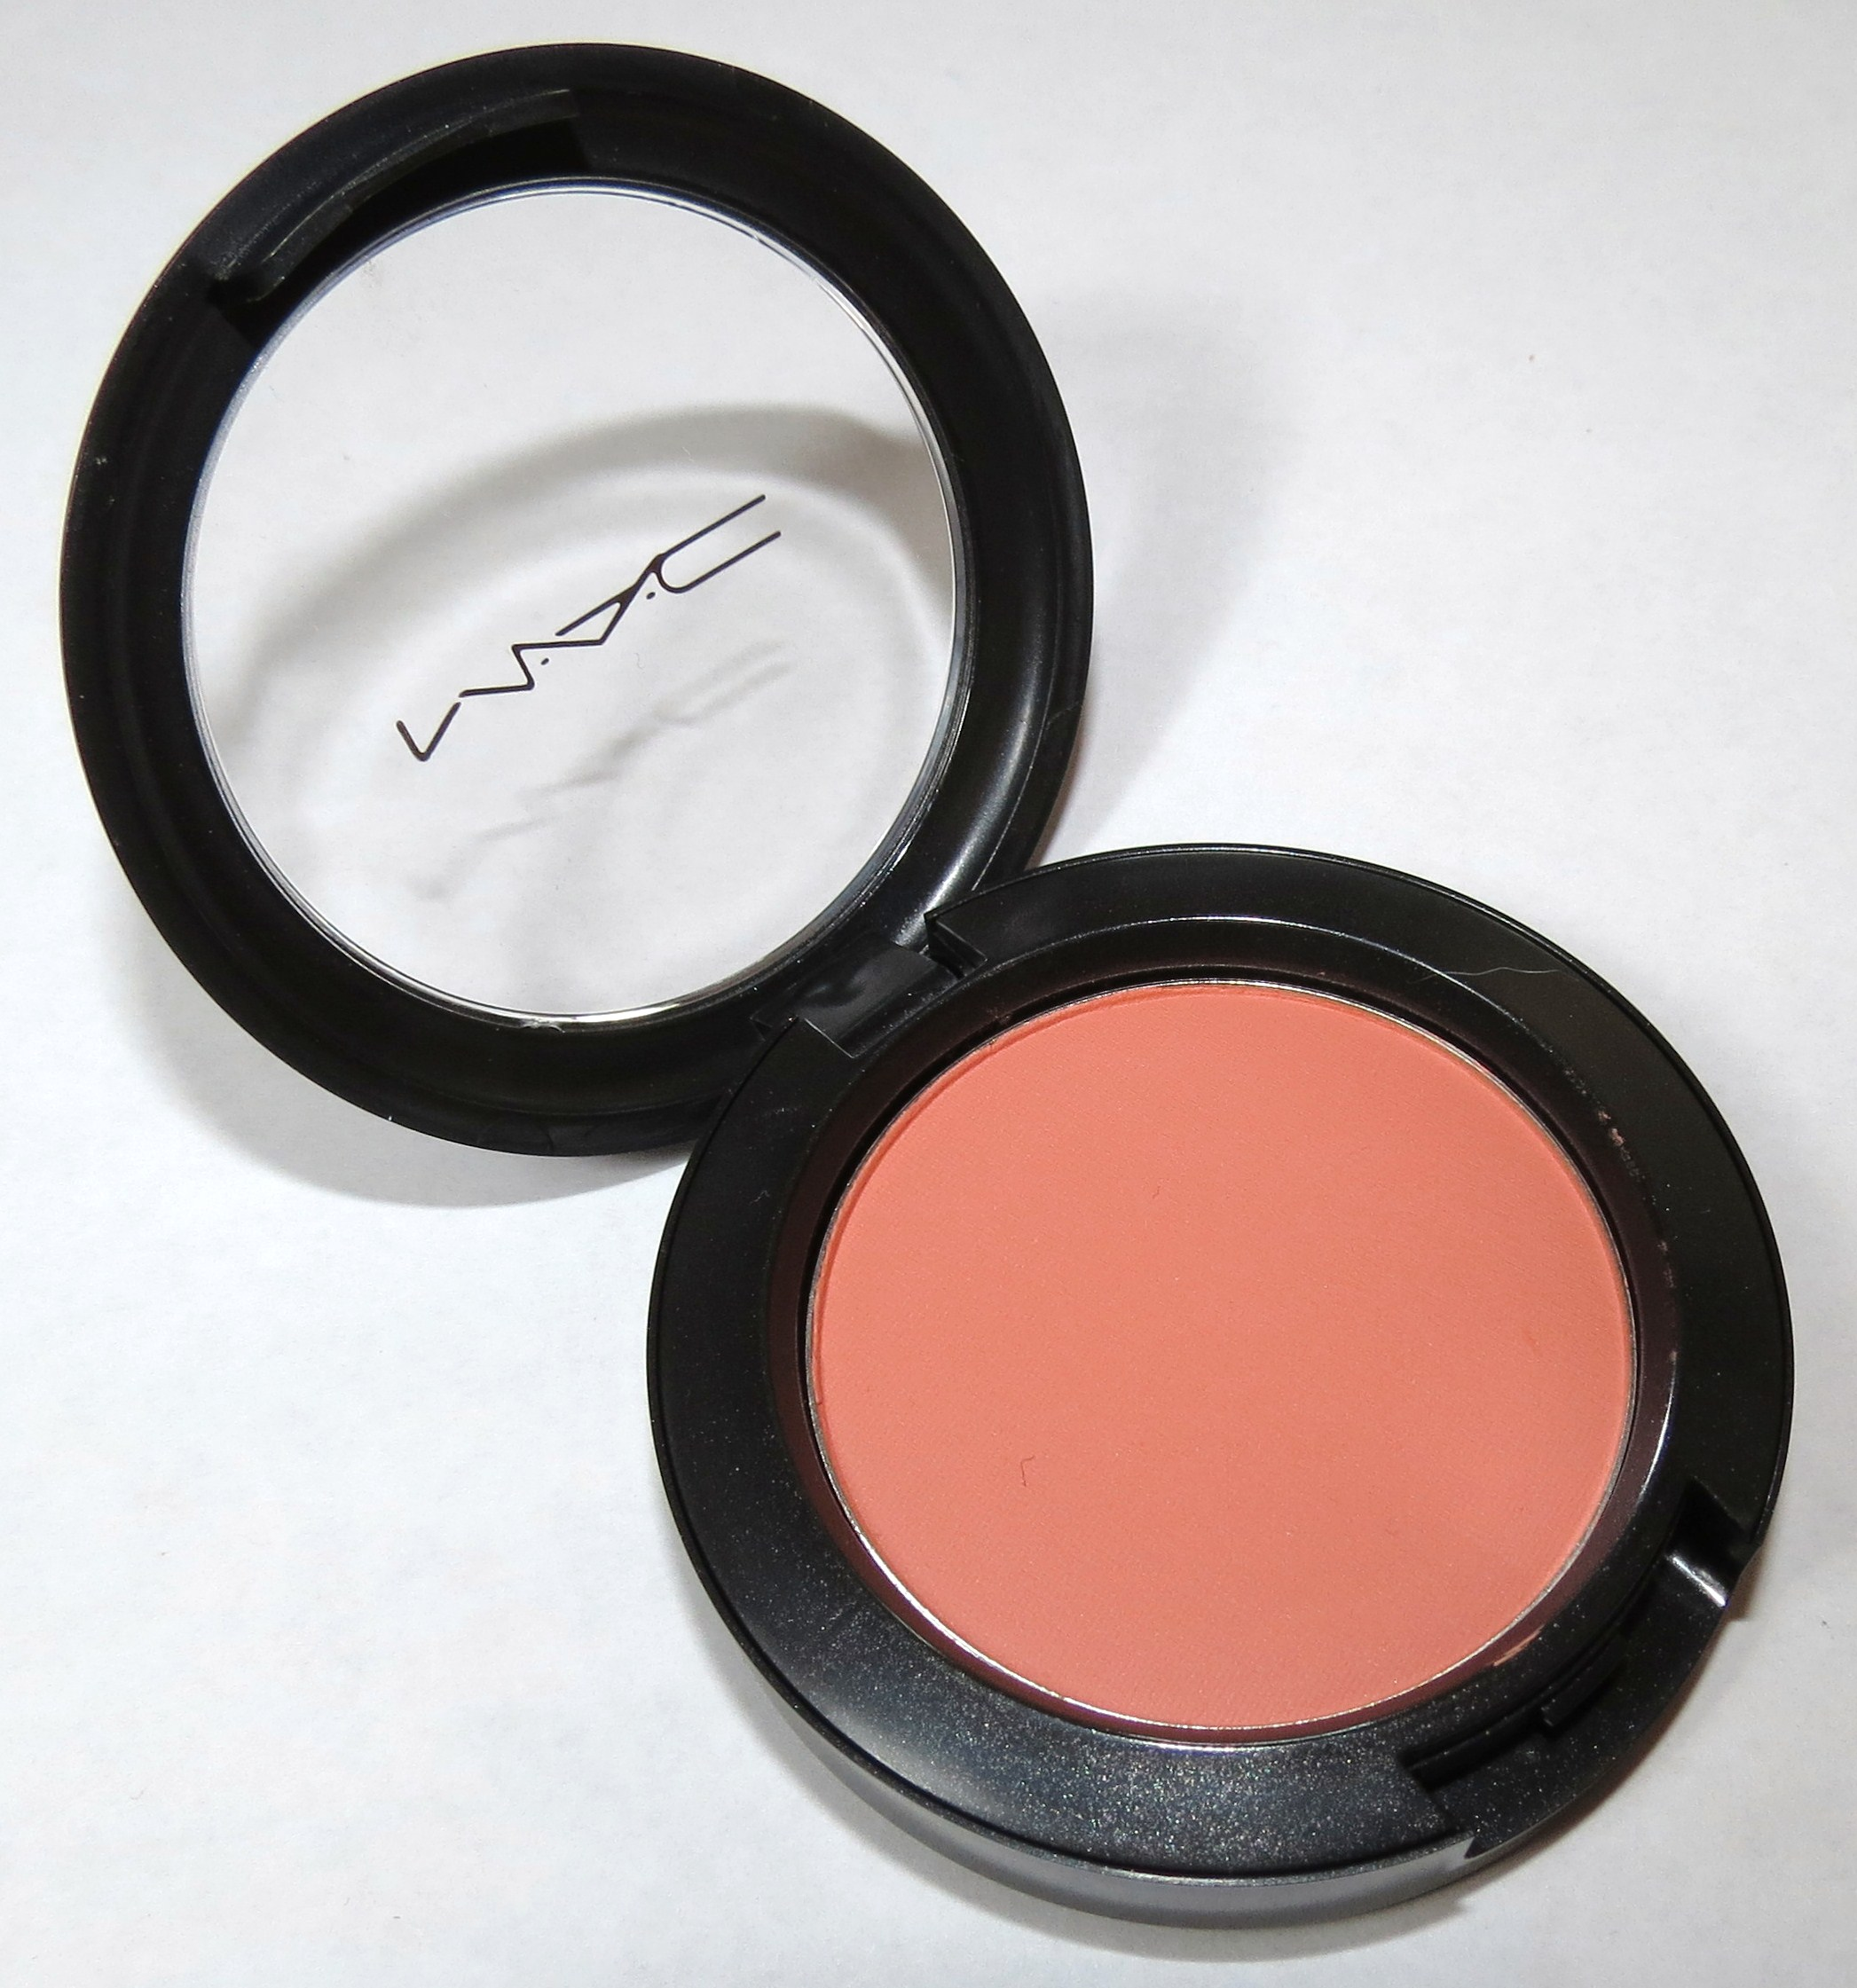 Connu MAC Peaches Powder Blush Swatches & Review - Blushing Noir ZV99